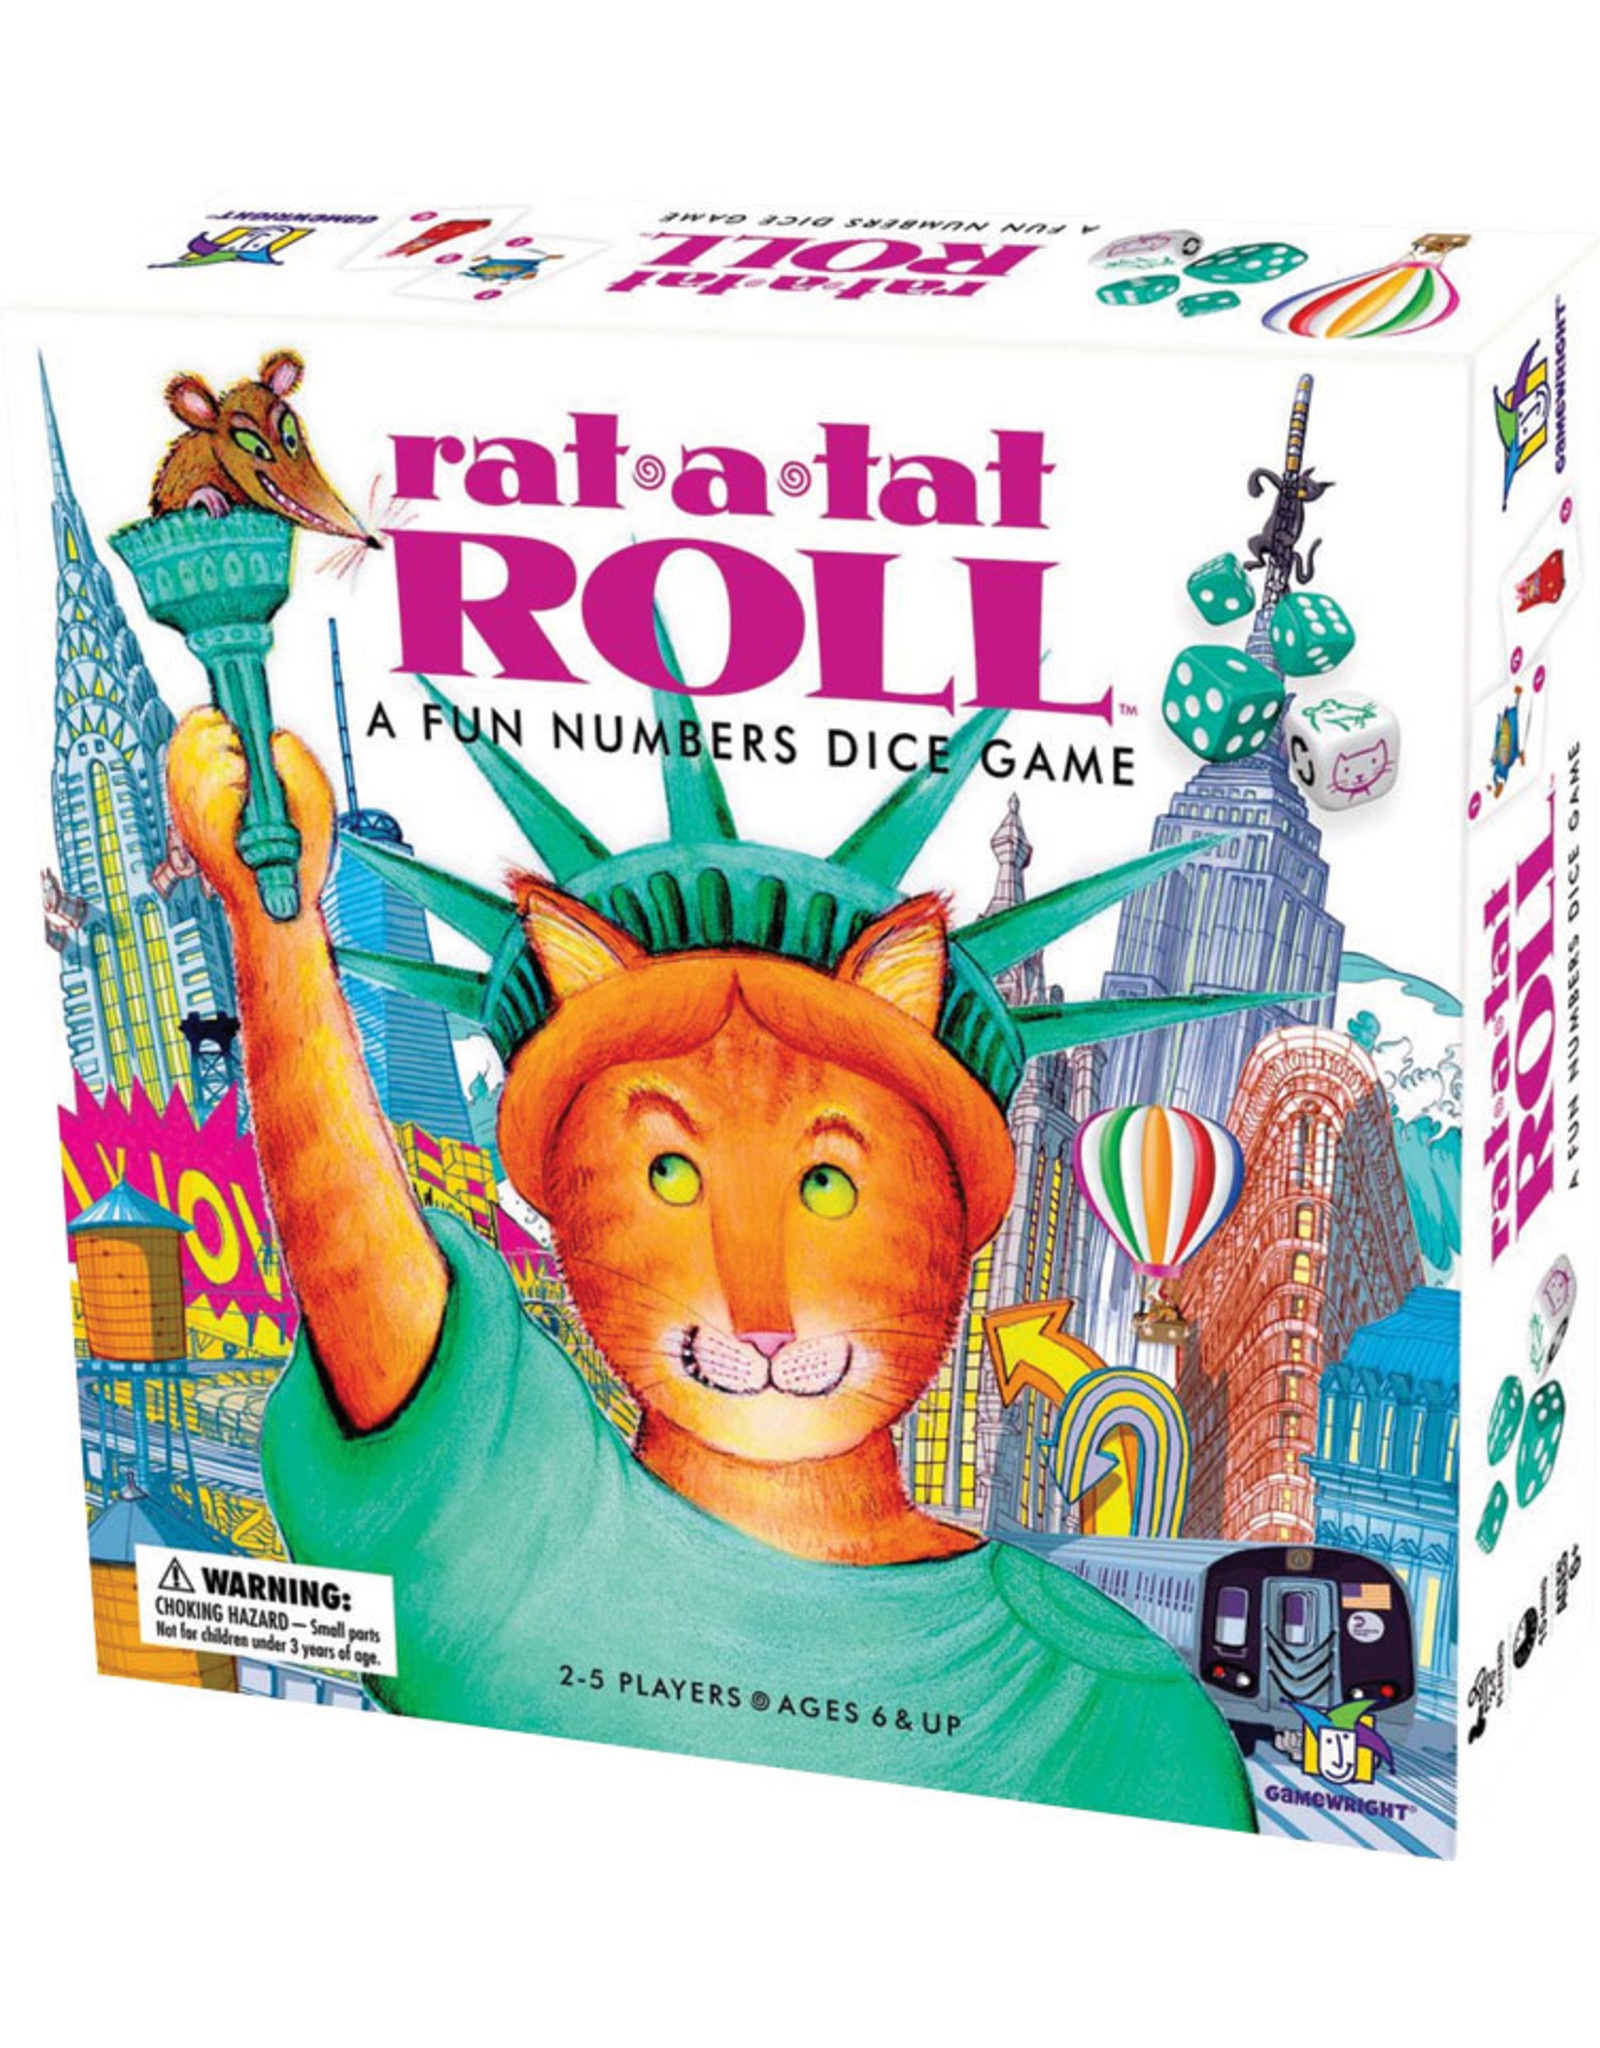 GAMEWRIGHT RAT A TAT ROLL DICE GAME